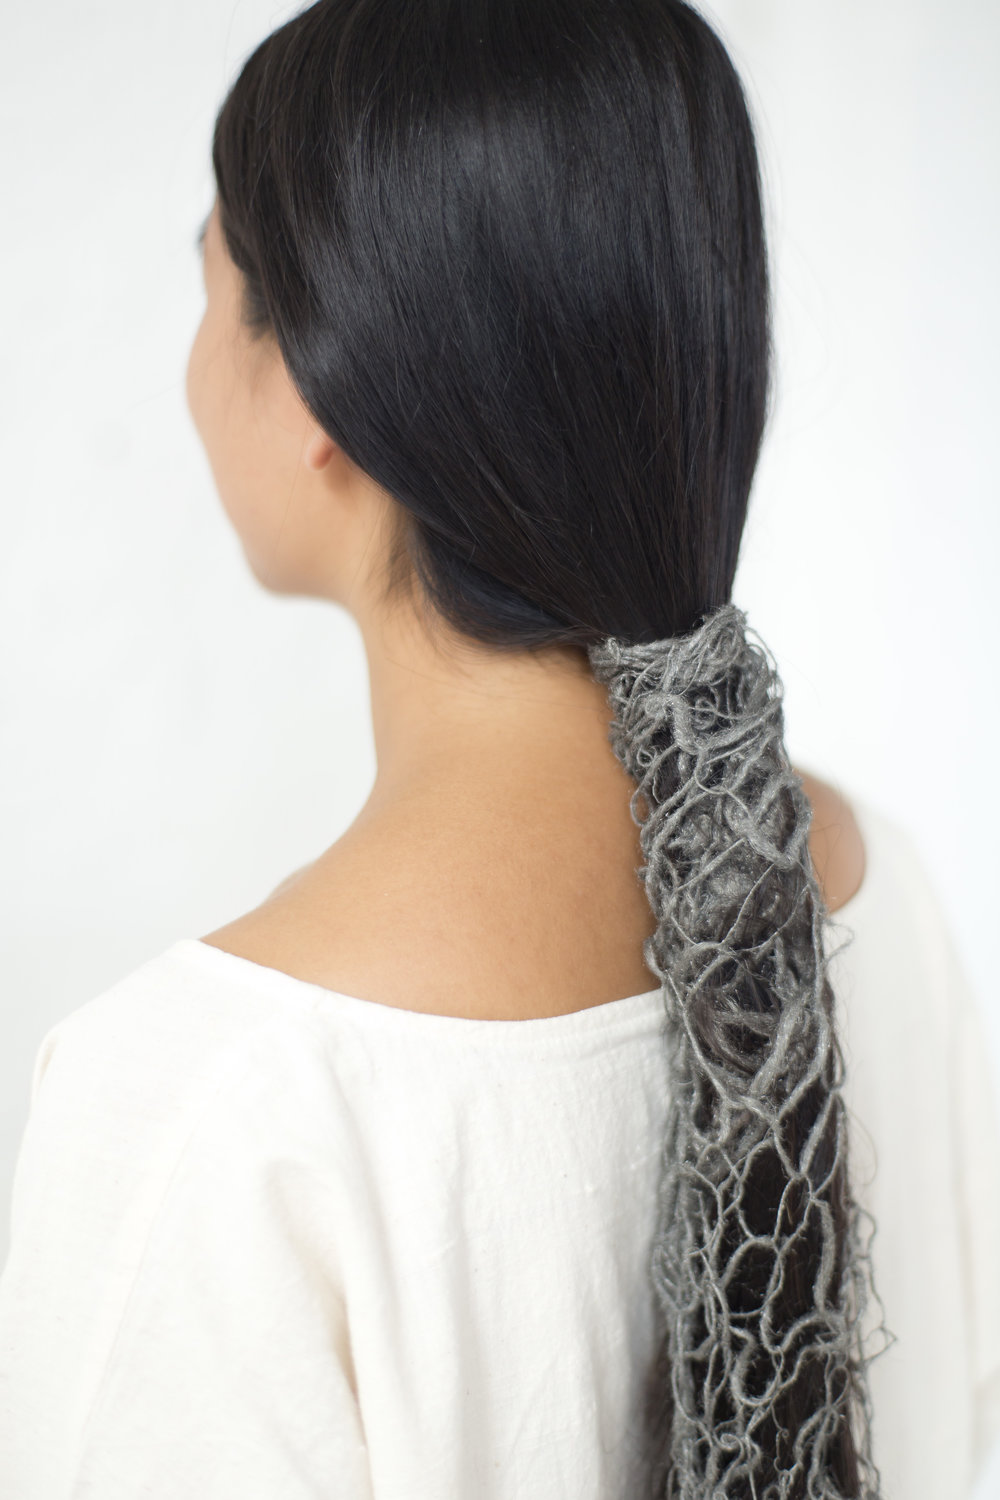 A detail photograph of the steel wool blanket wrapping around the artist's hair.